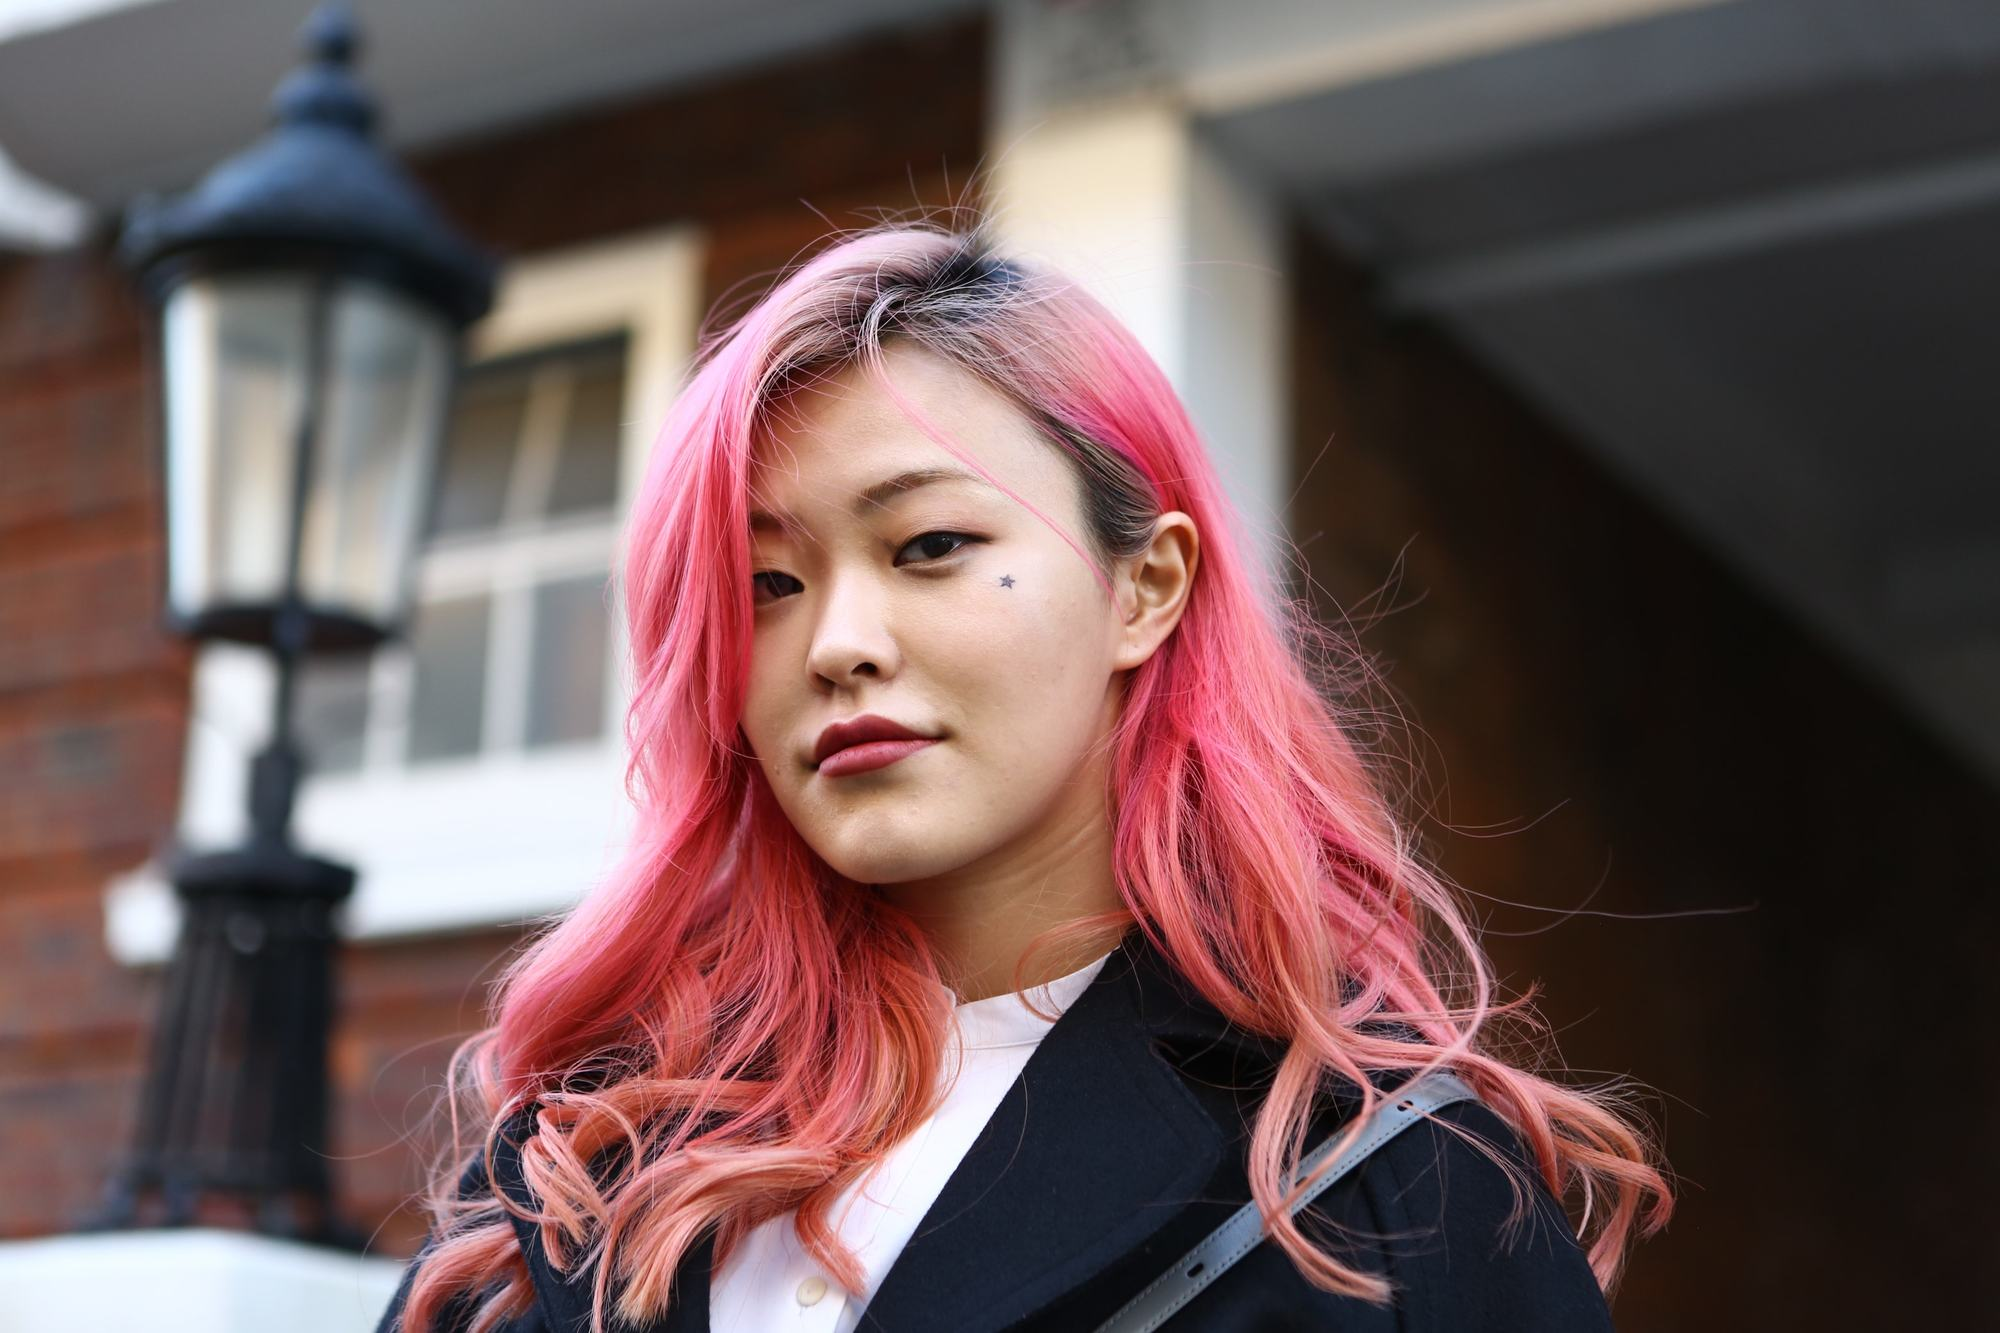 Asian girl with dyed pink hair standing outside